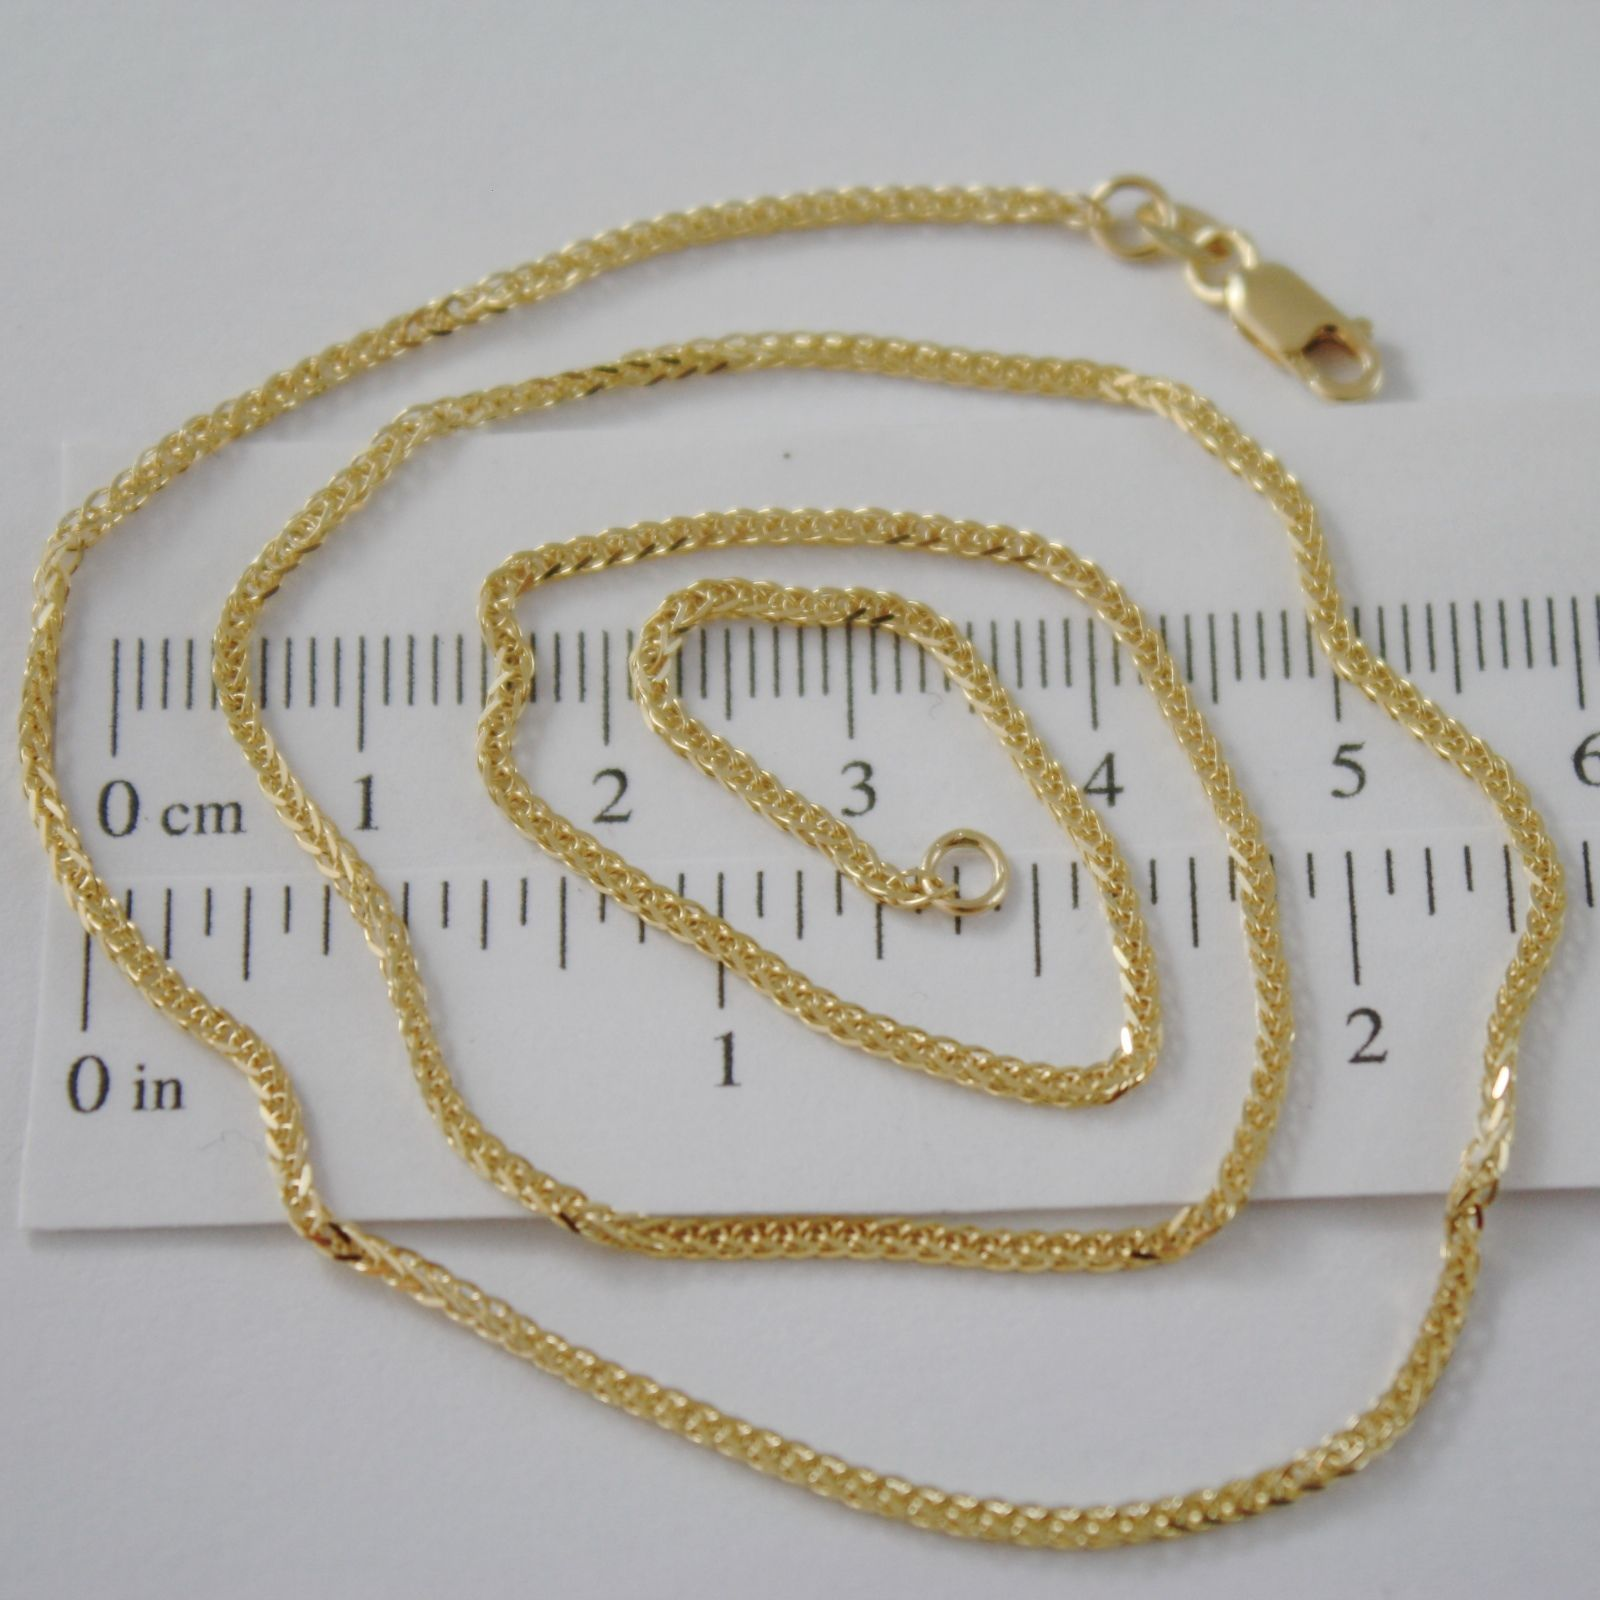 SOLID 18K YELLOW GOLD CHAIN NECKLACE, EAR SQUARE MESH 23.62 IN, MADE IN ITALY